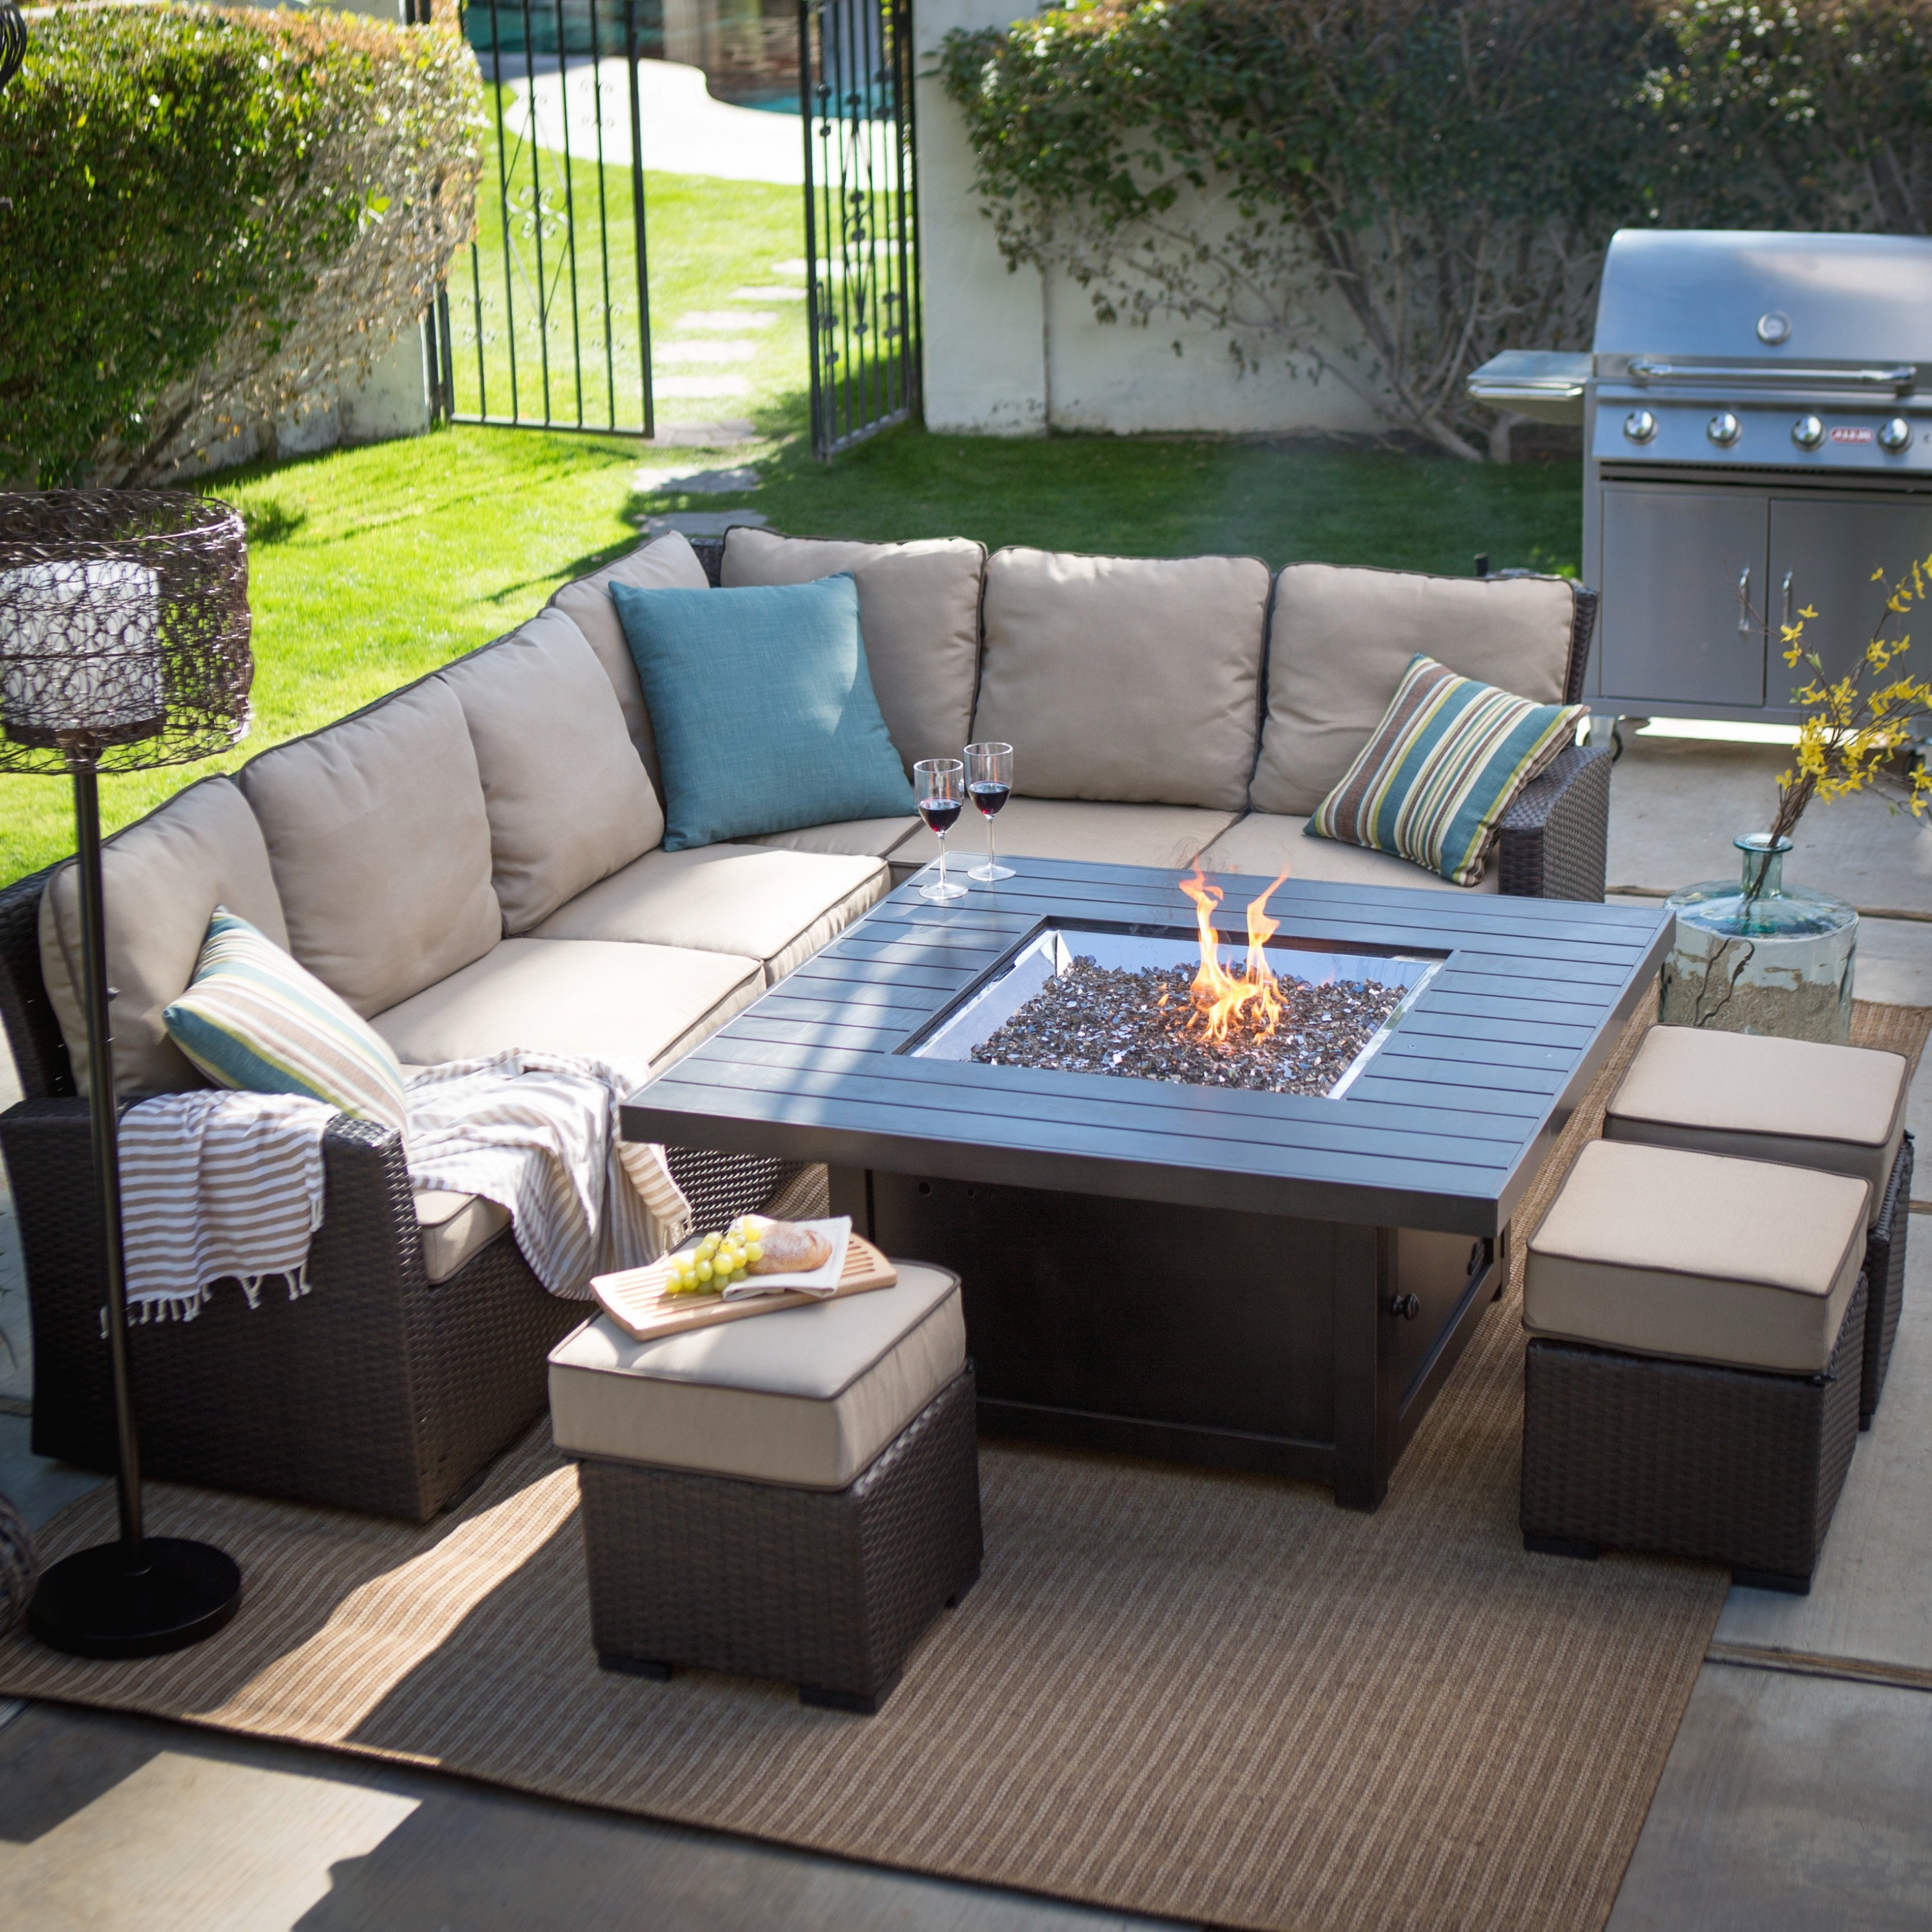 Patio Conversation Sets With Fire Pit Regarding Well Liked Revisited Fire Pit Conversation Sets Shrewd Patio Furniture Decor (View 11 of 15)